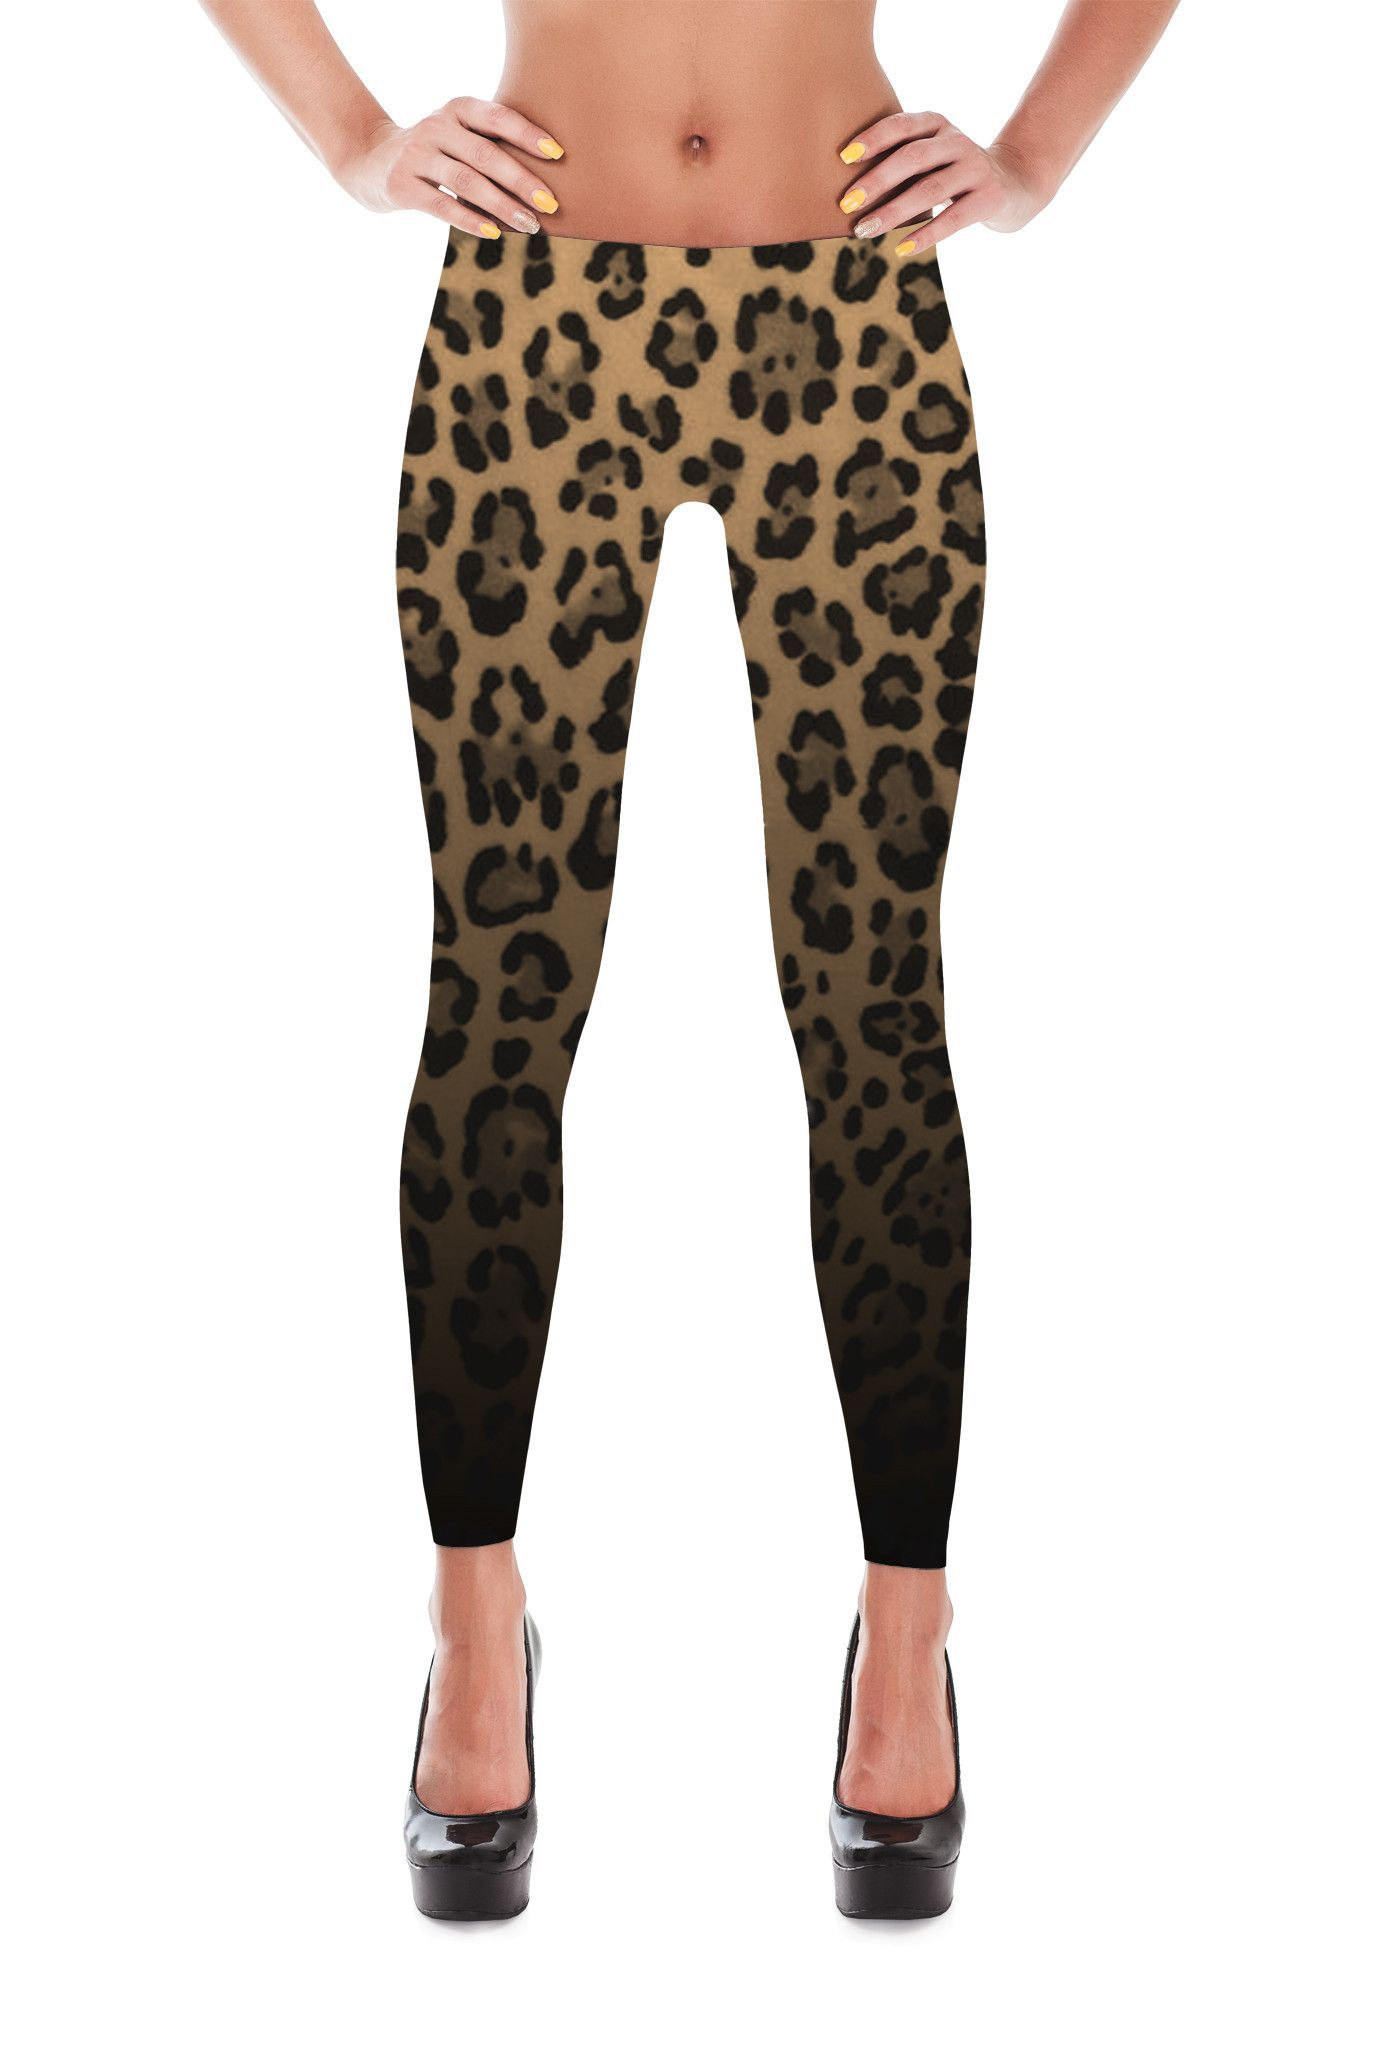 Awesome Leopard pattern print Leggings. Shiny, durable and hot. These polyester/spandex leggings will never lose their stretch and provide that support and comfort you love in unique designs. Made of